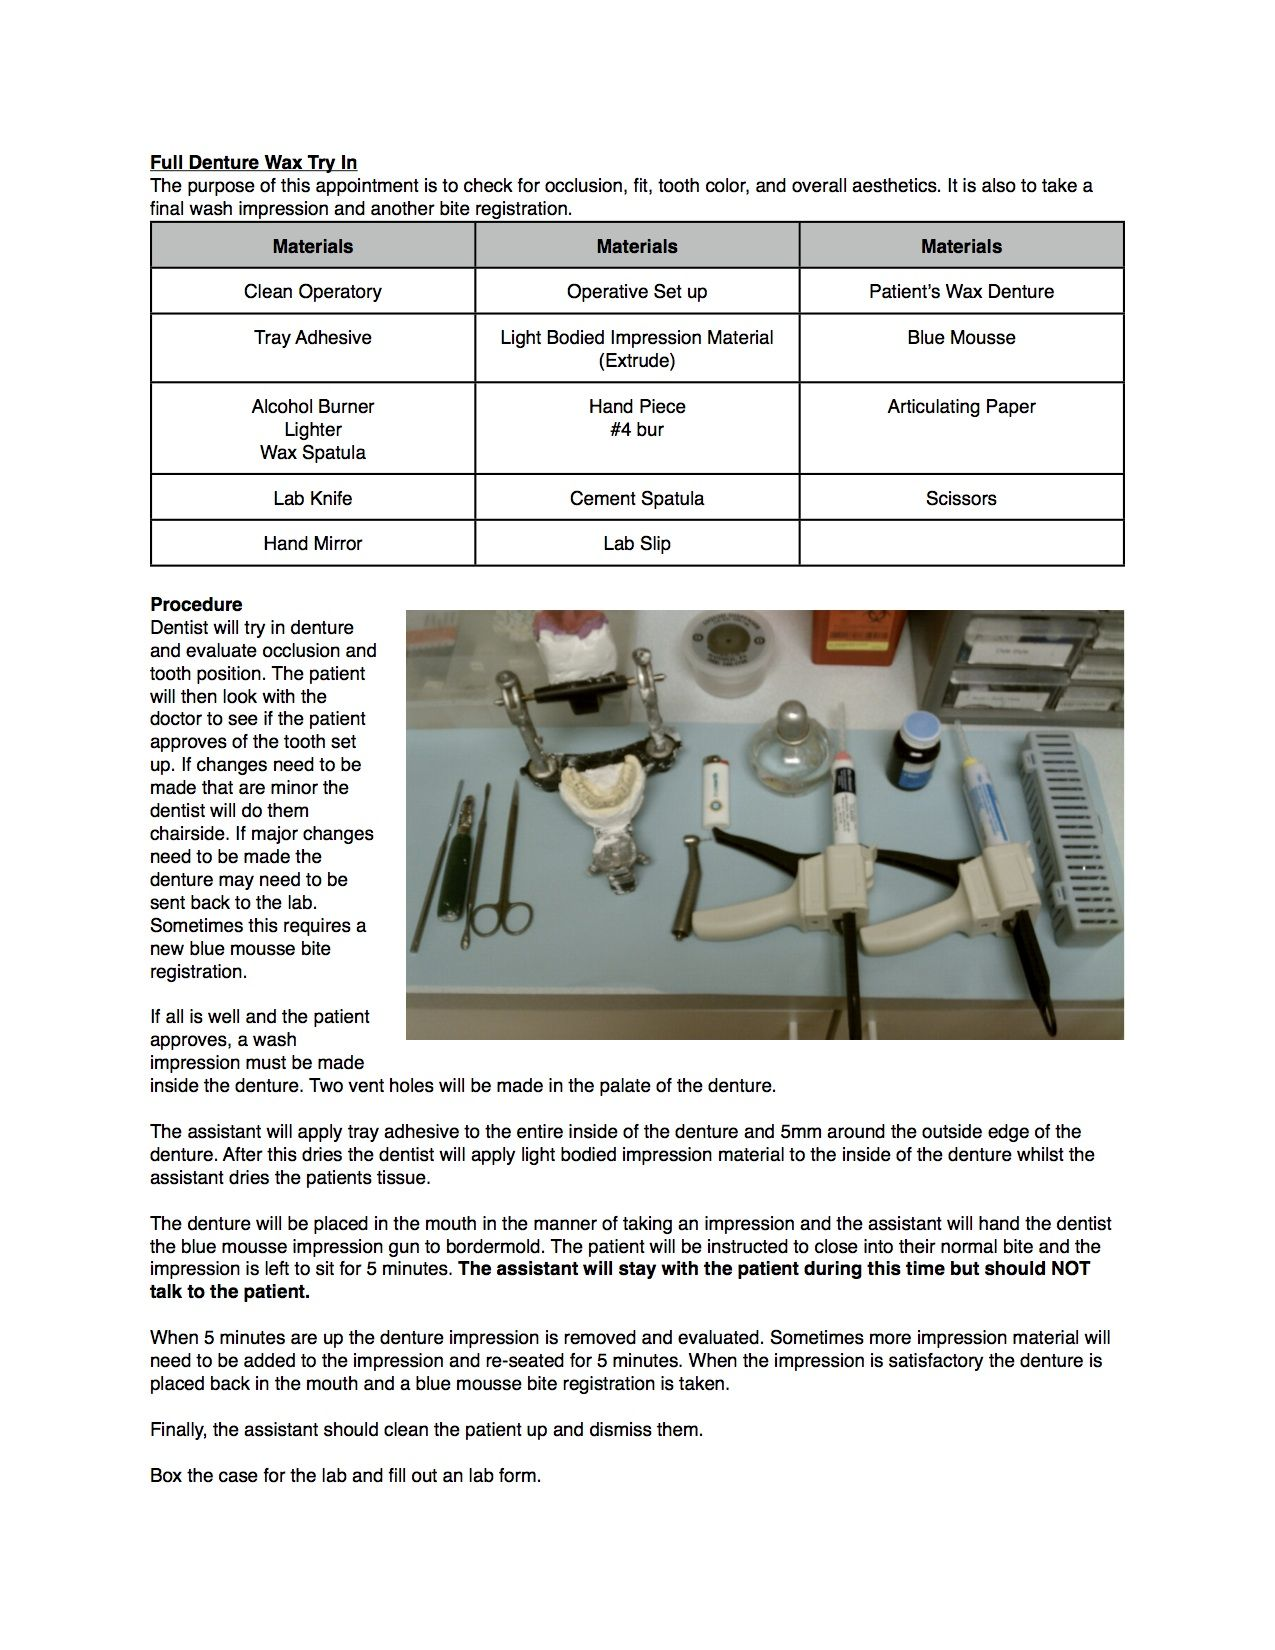 Equine Dentistry Manual Guide